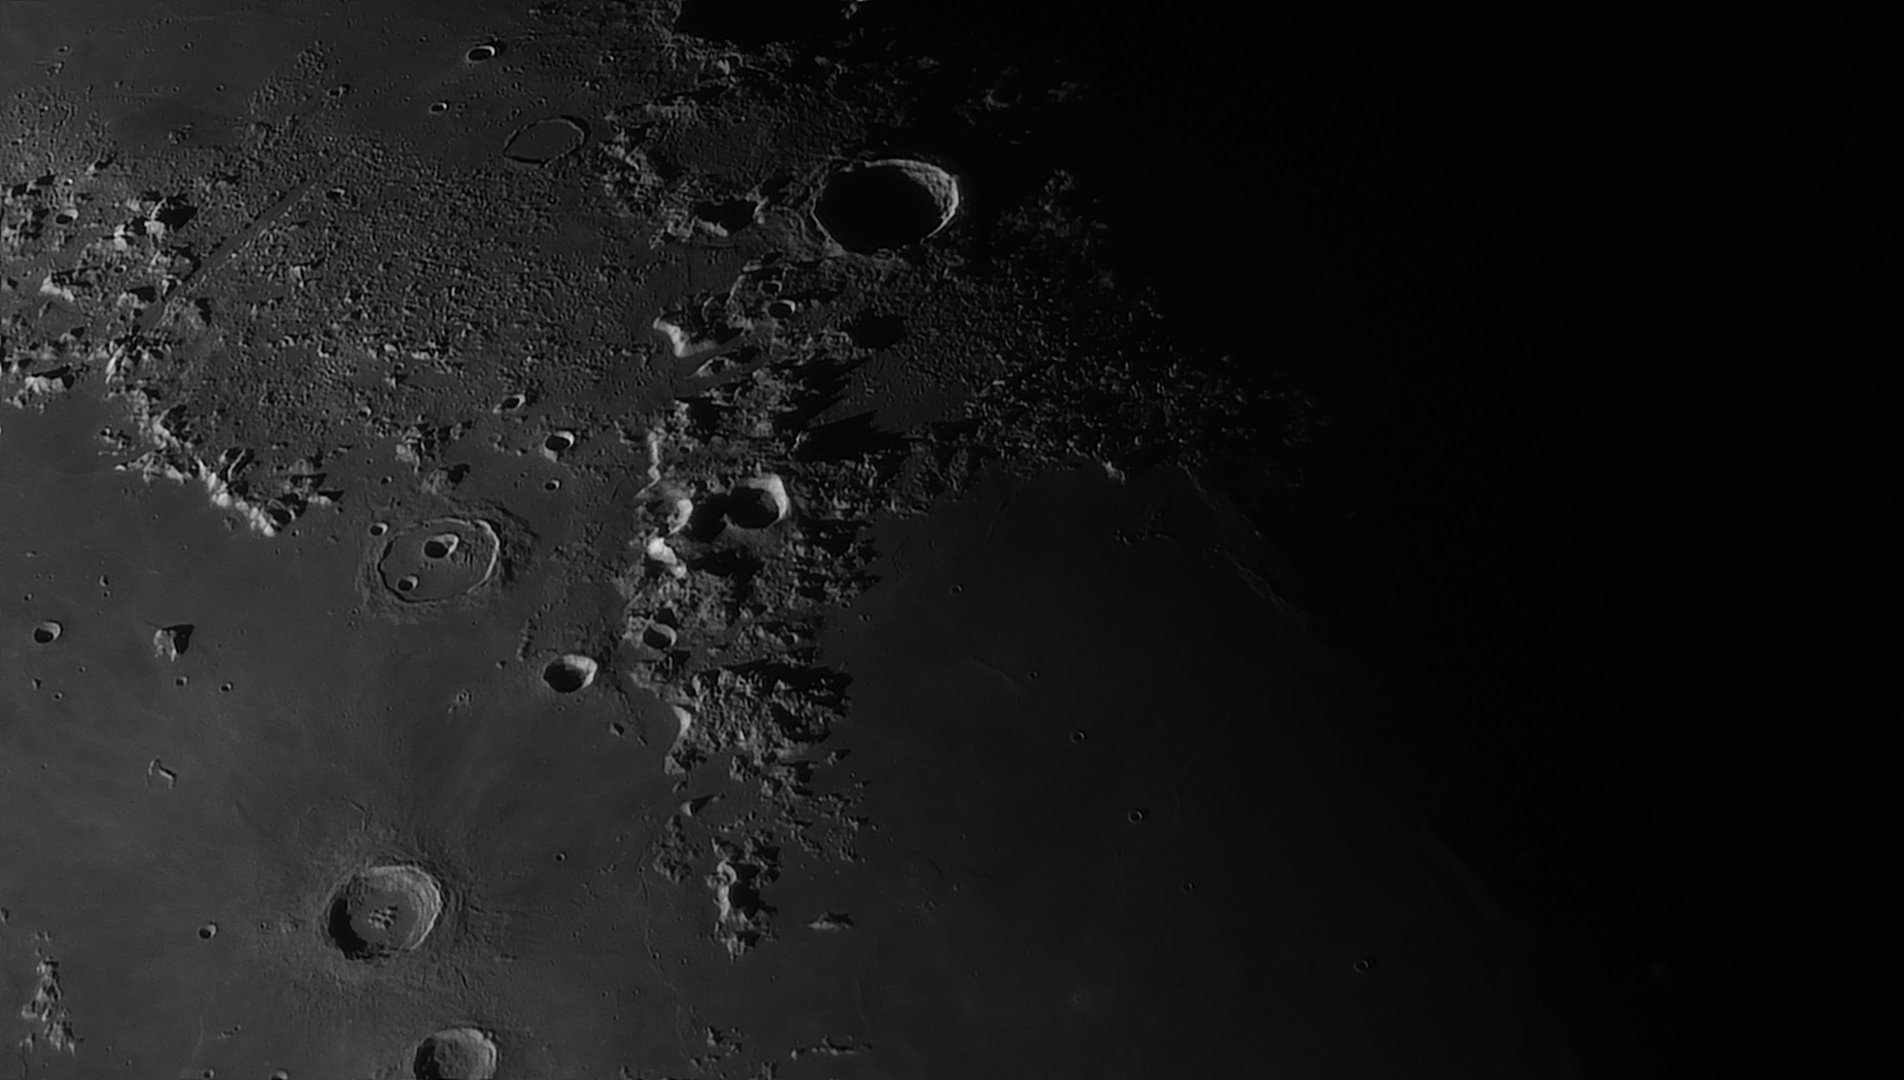 5e5194c21a193_Moon_055221_160120_ZWOASI290MM_Rouge_23A_AS_P35_lapl6_ap644_AI_Deconvolution_3--.jpg.0884f758cd533ff3c2aaa6bb777521ba.jpg